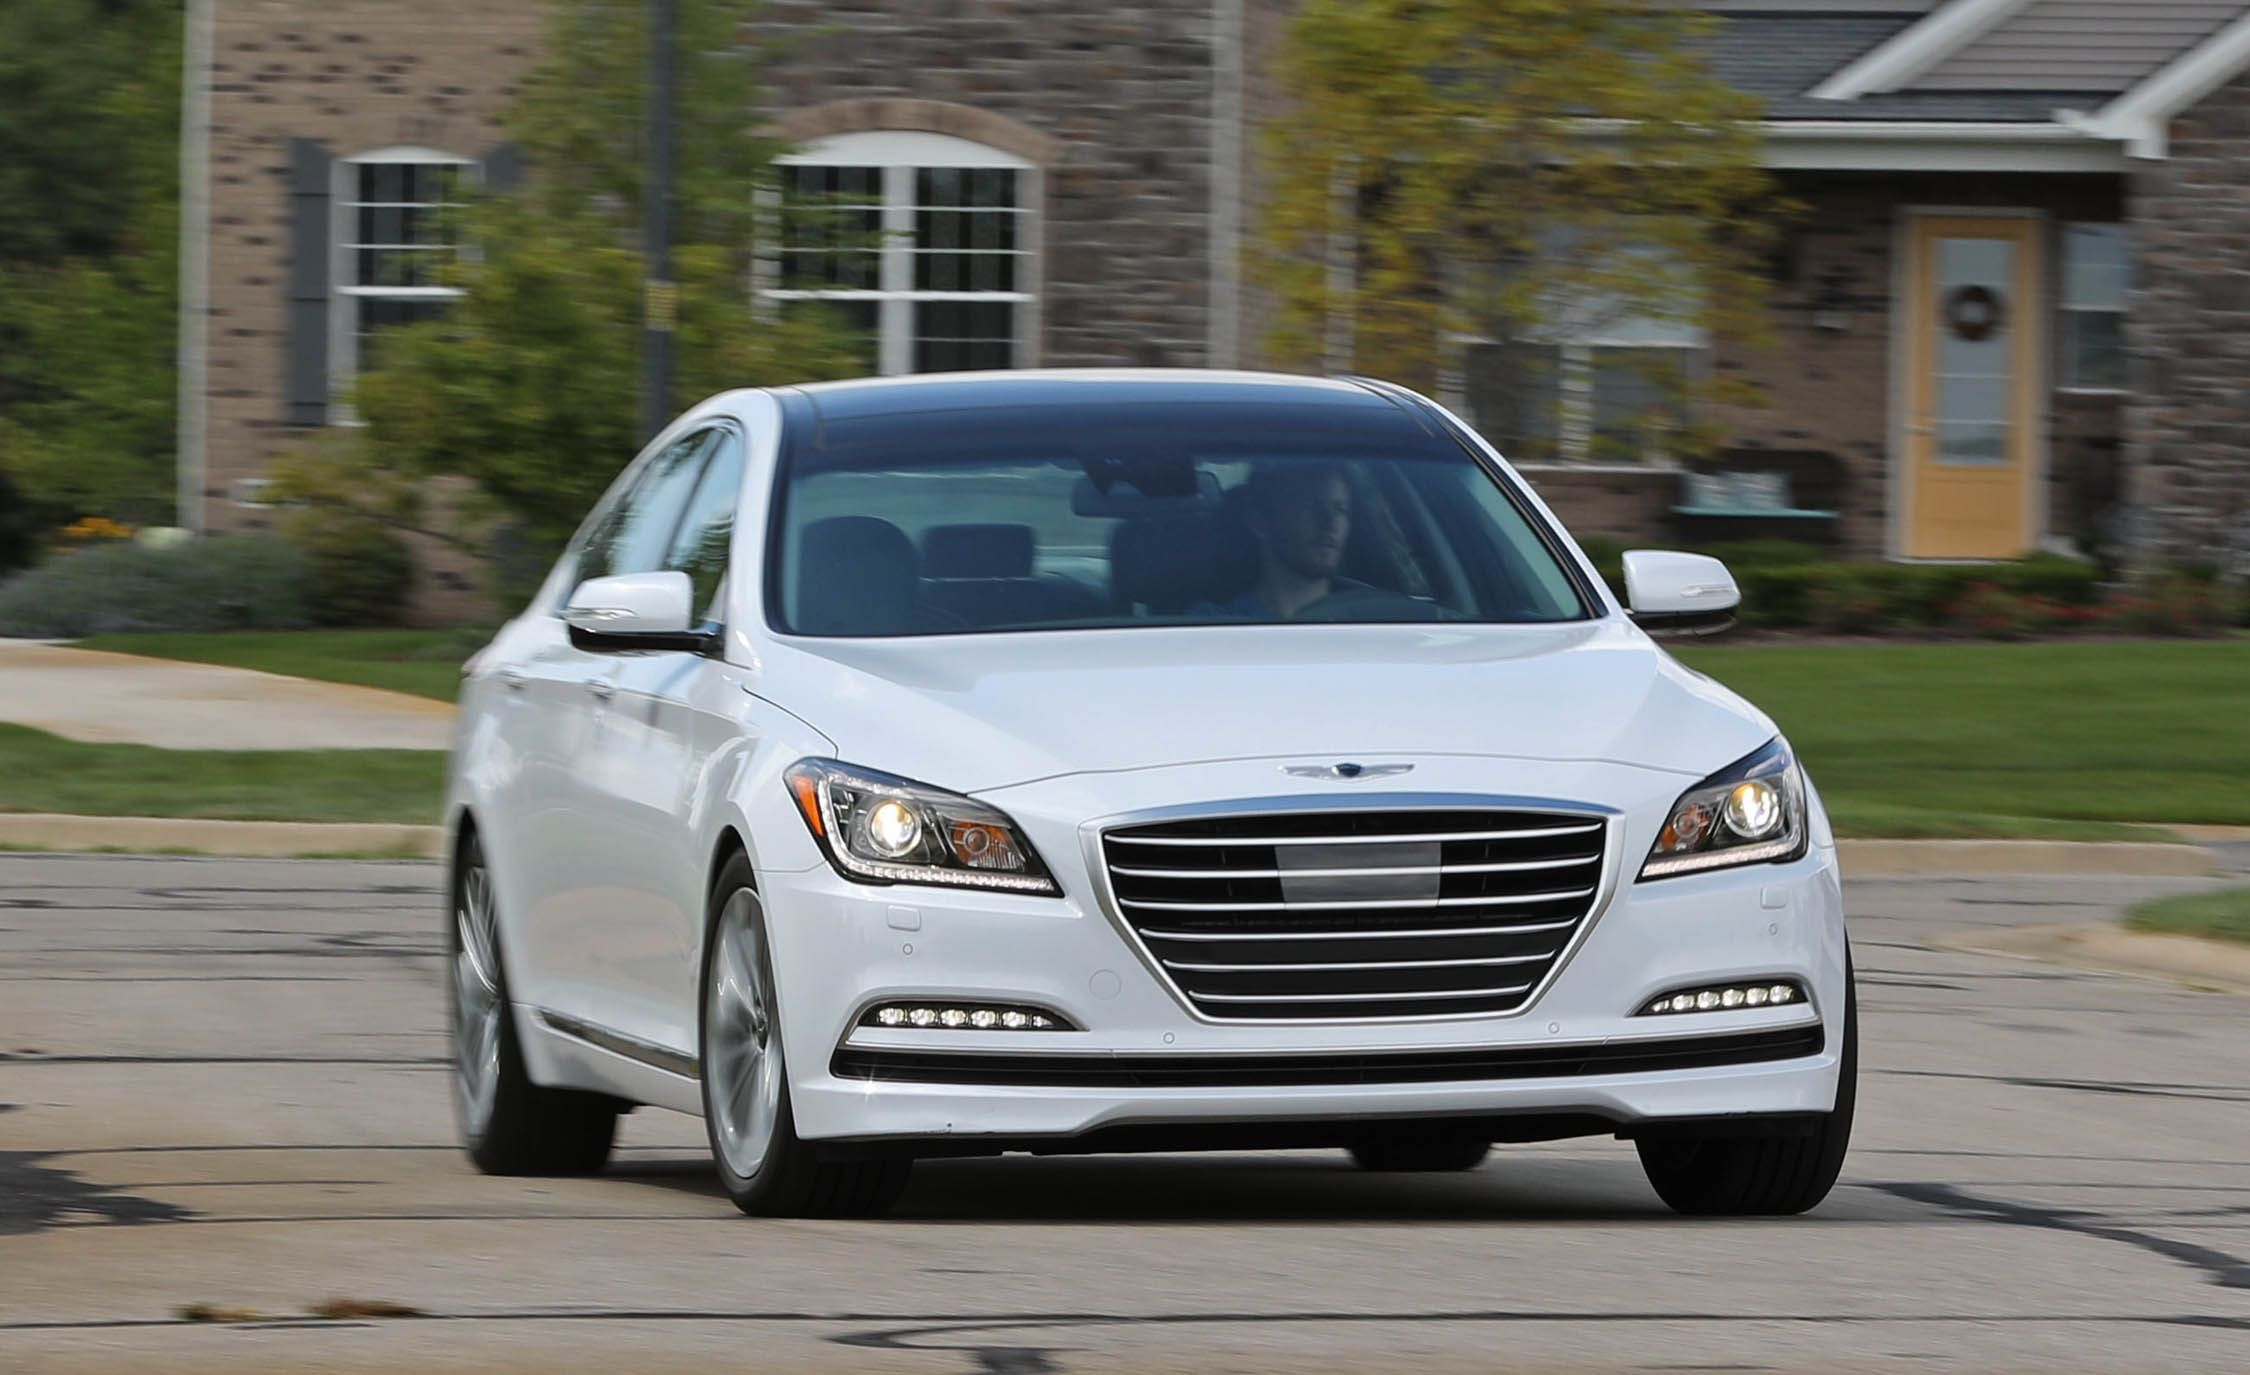 2017 genesis g80 bluelink infotainment review car and driver. Black Bedroom Furniture Sets. Home Design Ideas